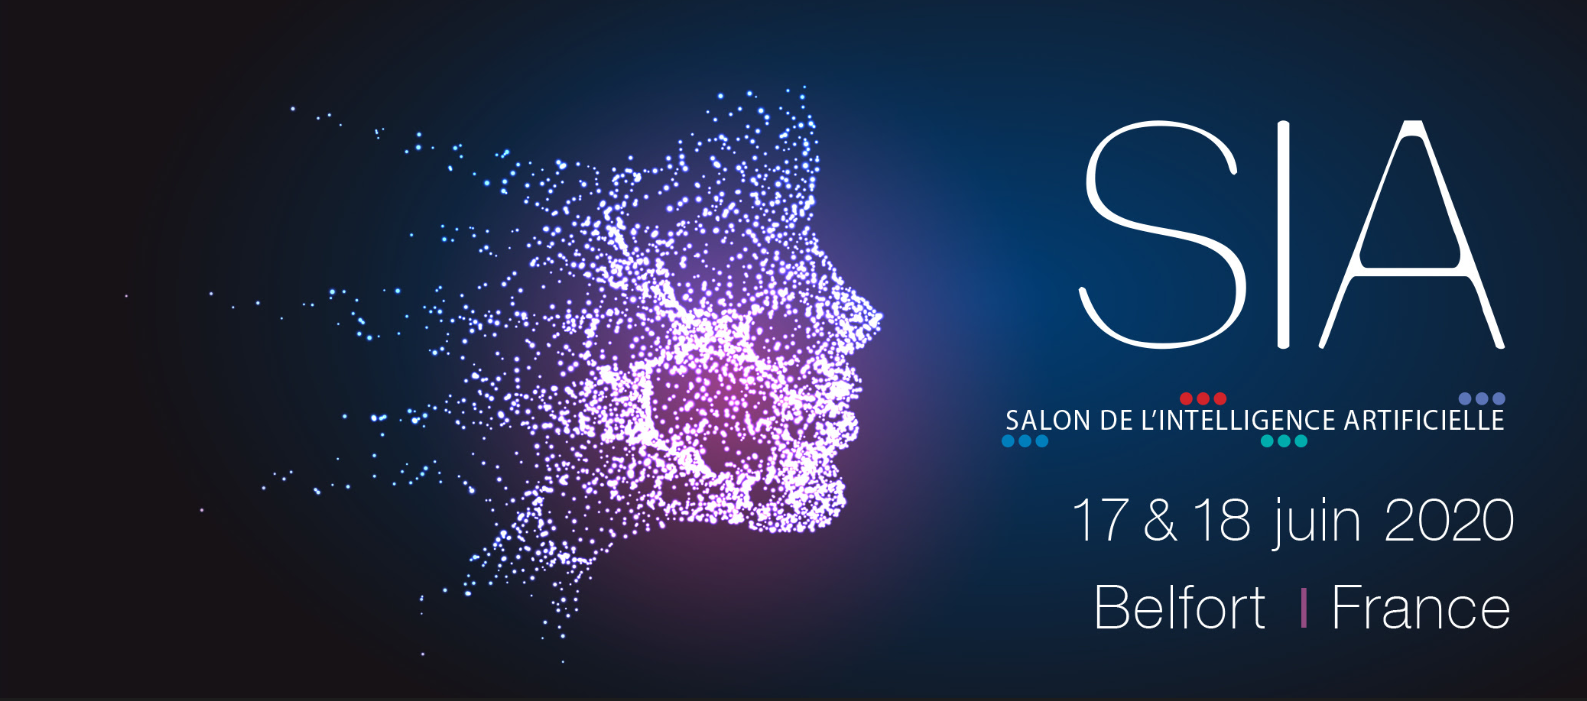 SIA - Salon de l'Intelligence Artificielle